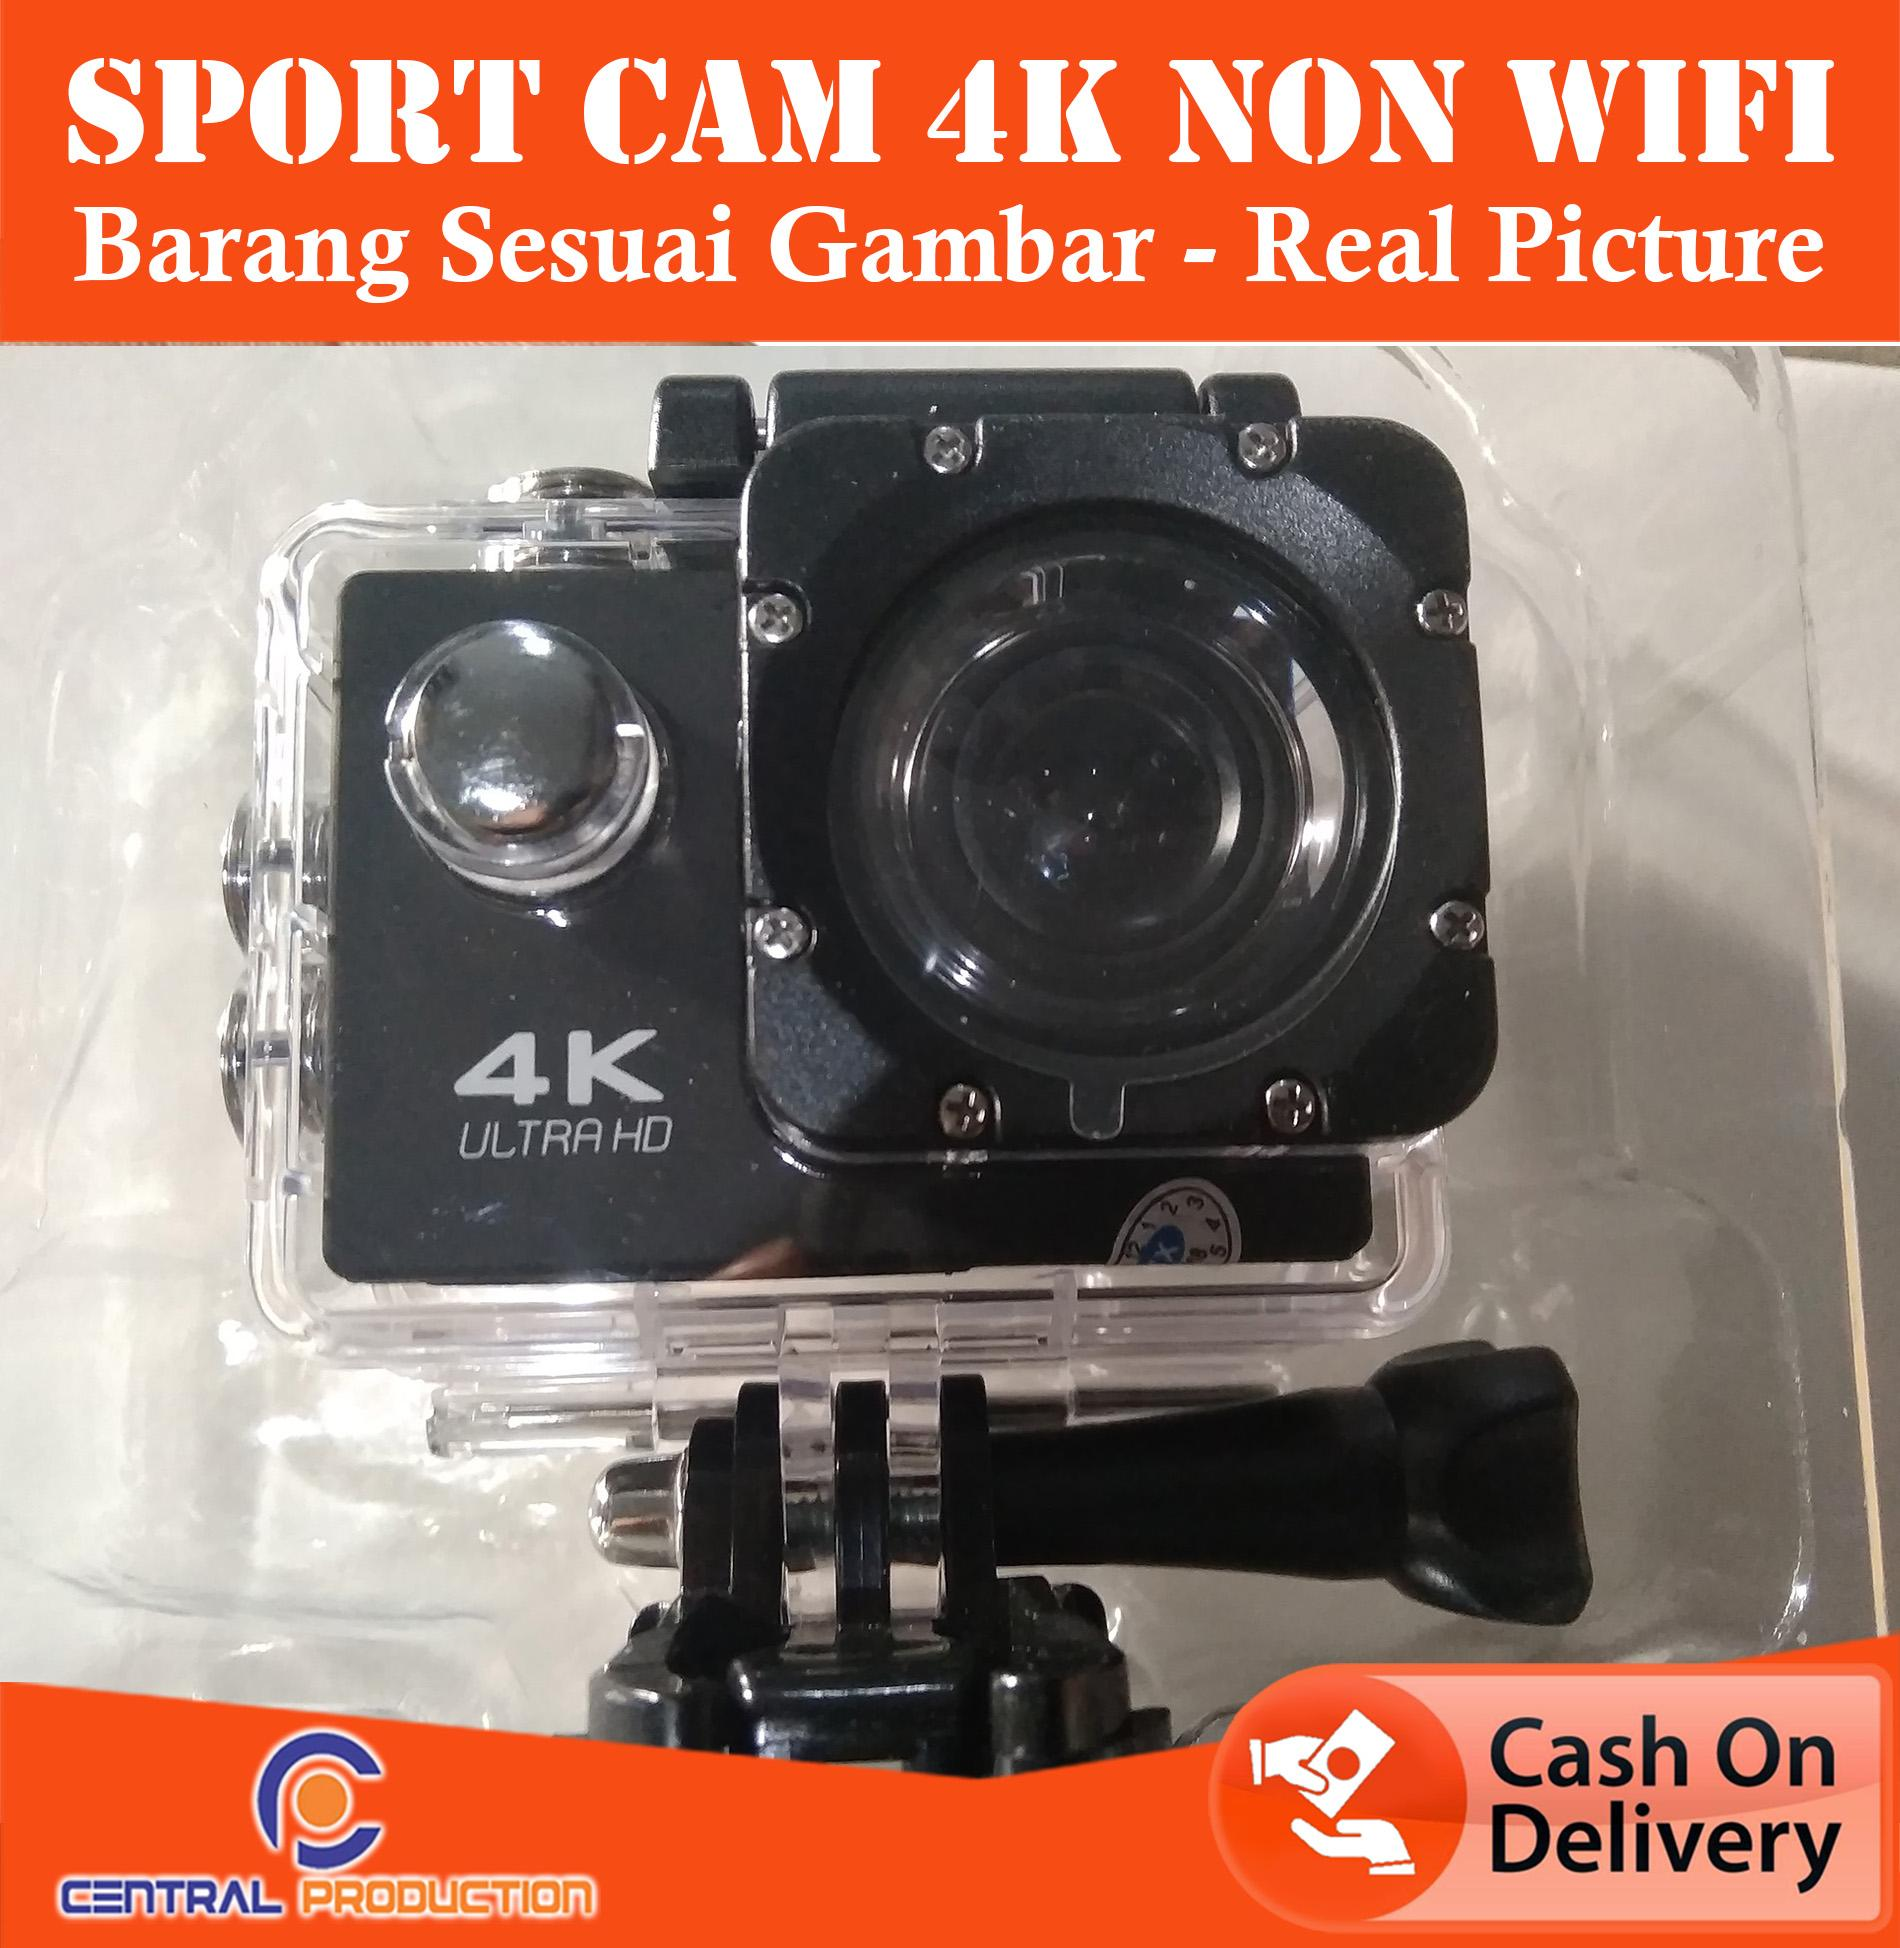 ACTION CAM / Kamera Aksi 4K Sports Cam 1080P / Action Camera FULL HD Non Wifi REAL PICTURE